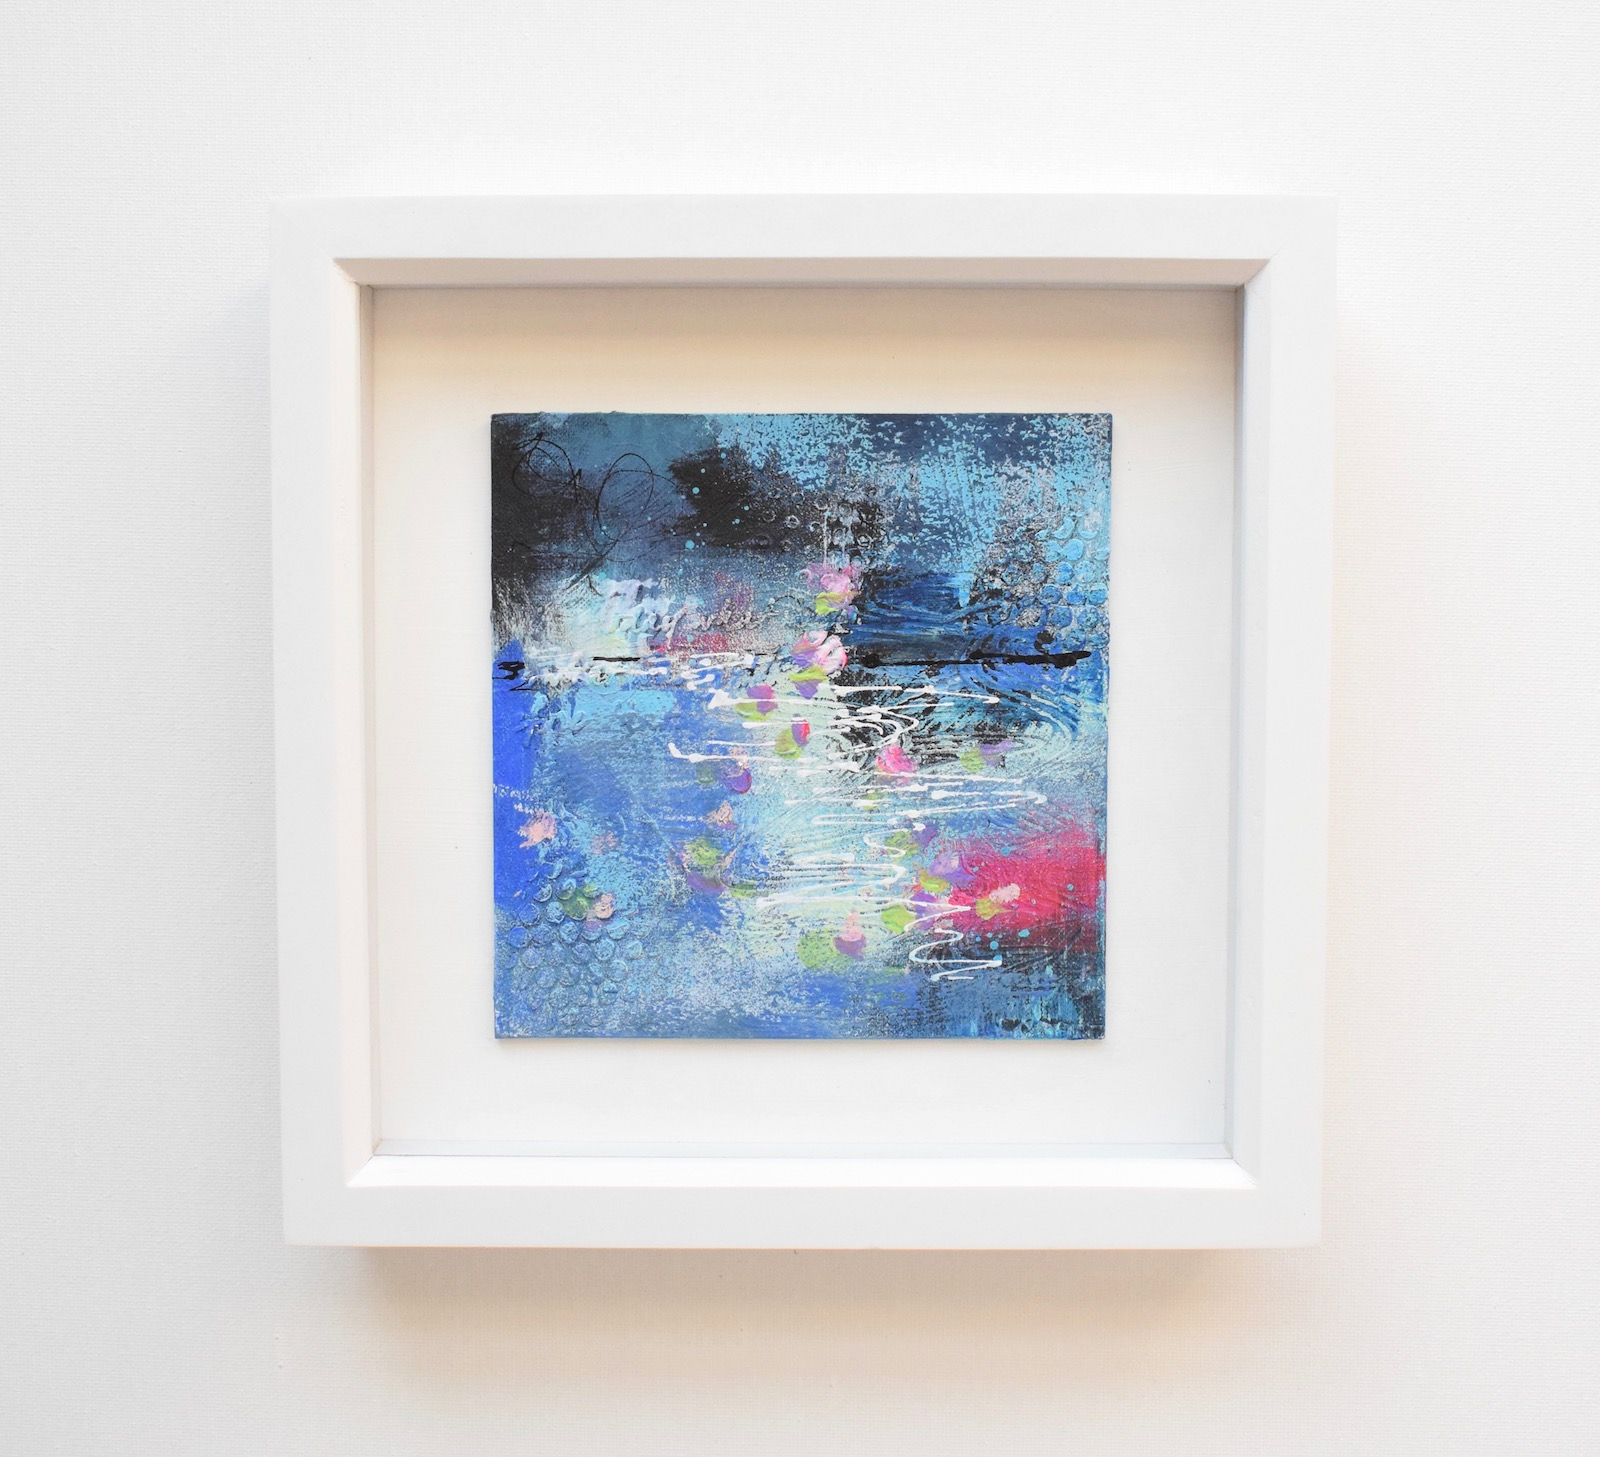 DSC 6052 - Small, blue, mixed media art, in white frame :  blue abstract water floral (37)